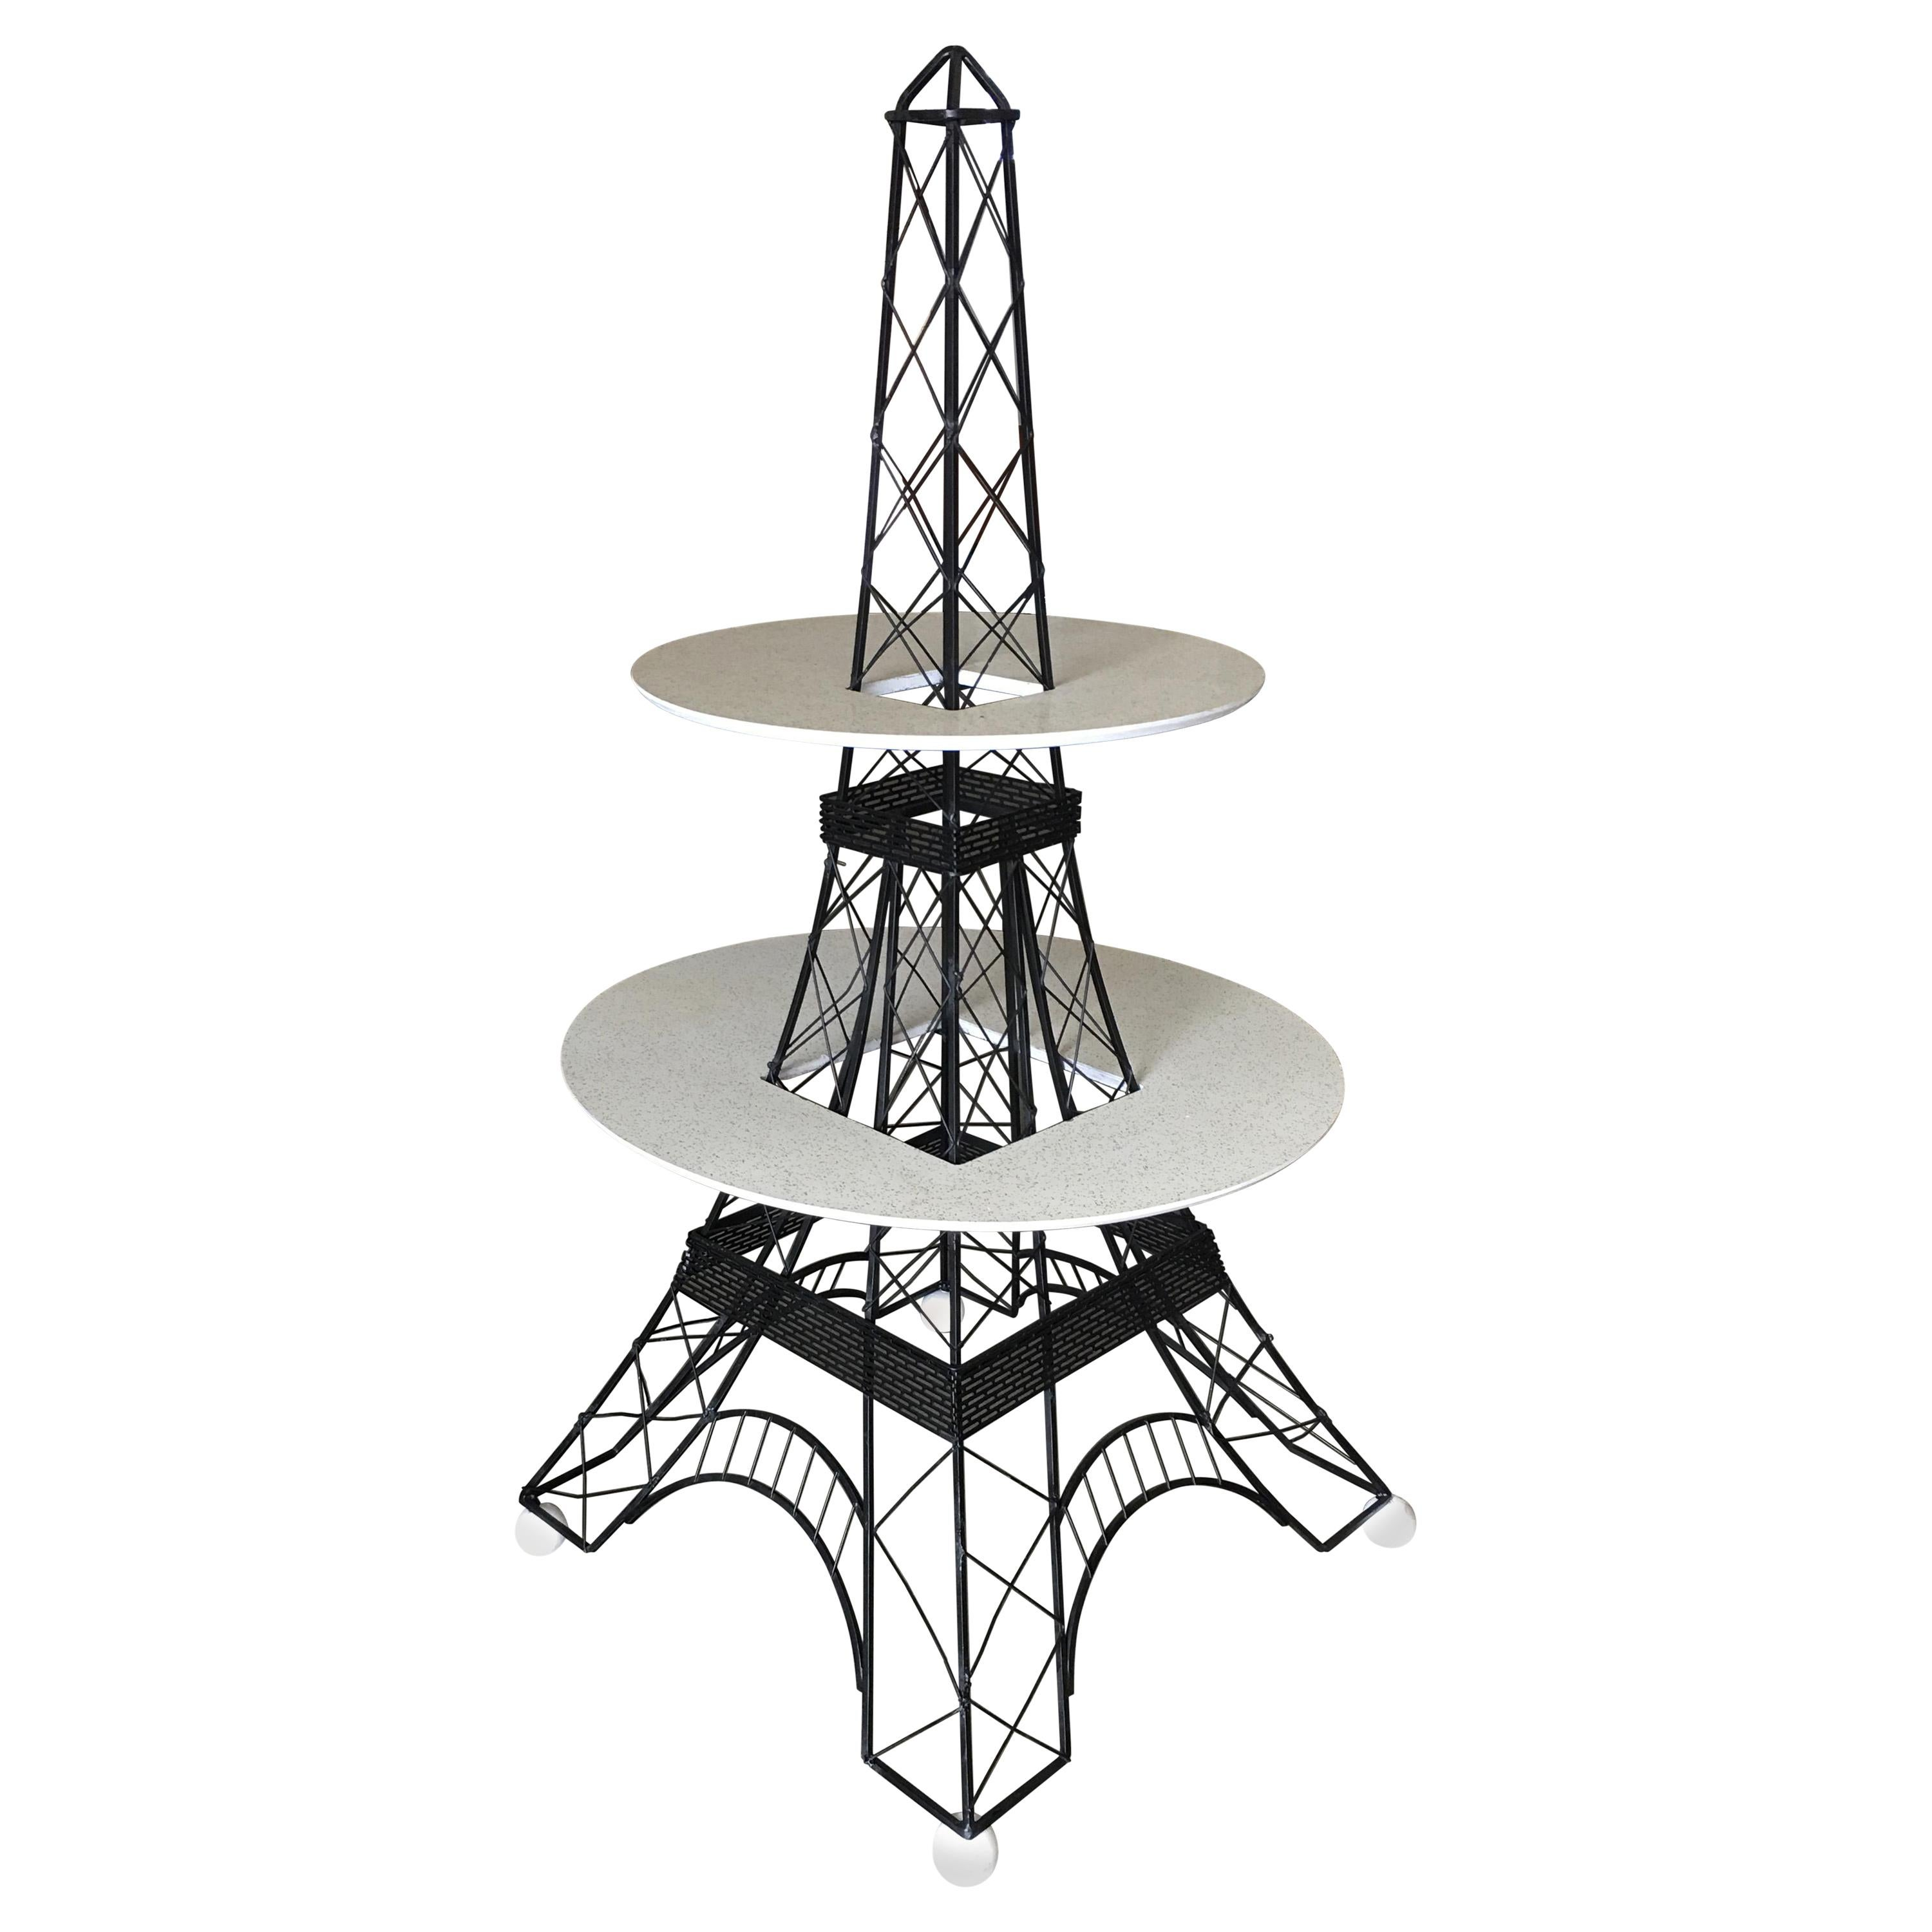 Midcentury Two-Tier Eiffel Tower Brass Sculptural Cocktail Table